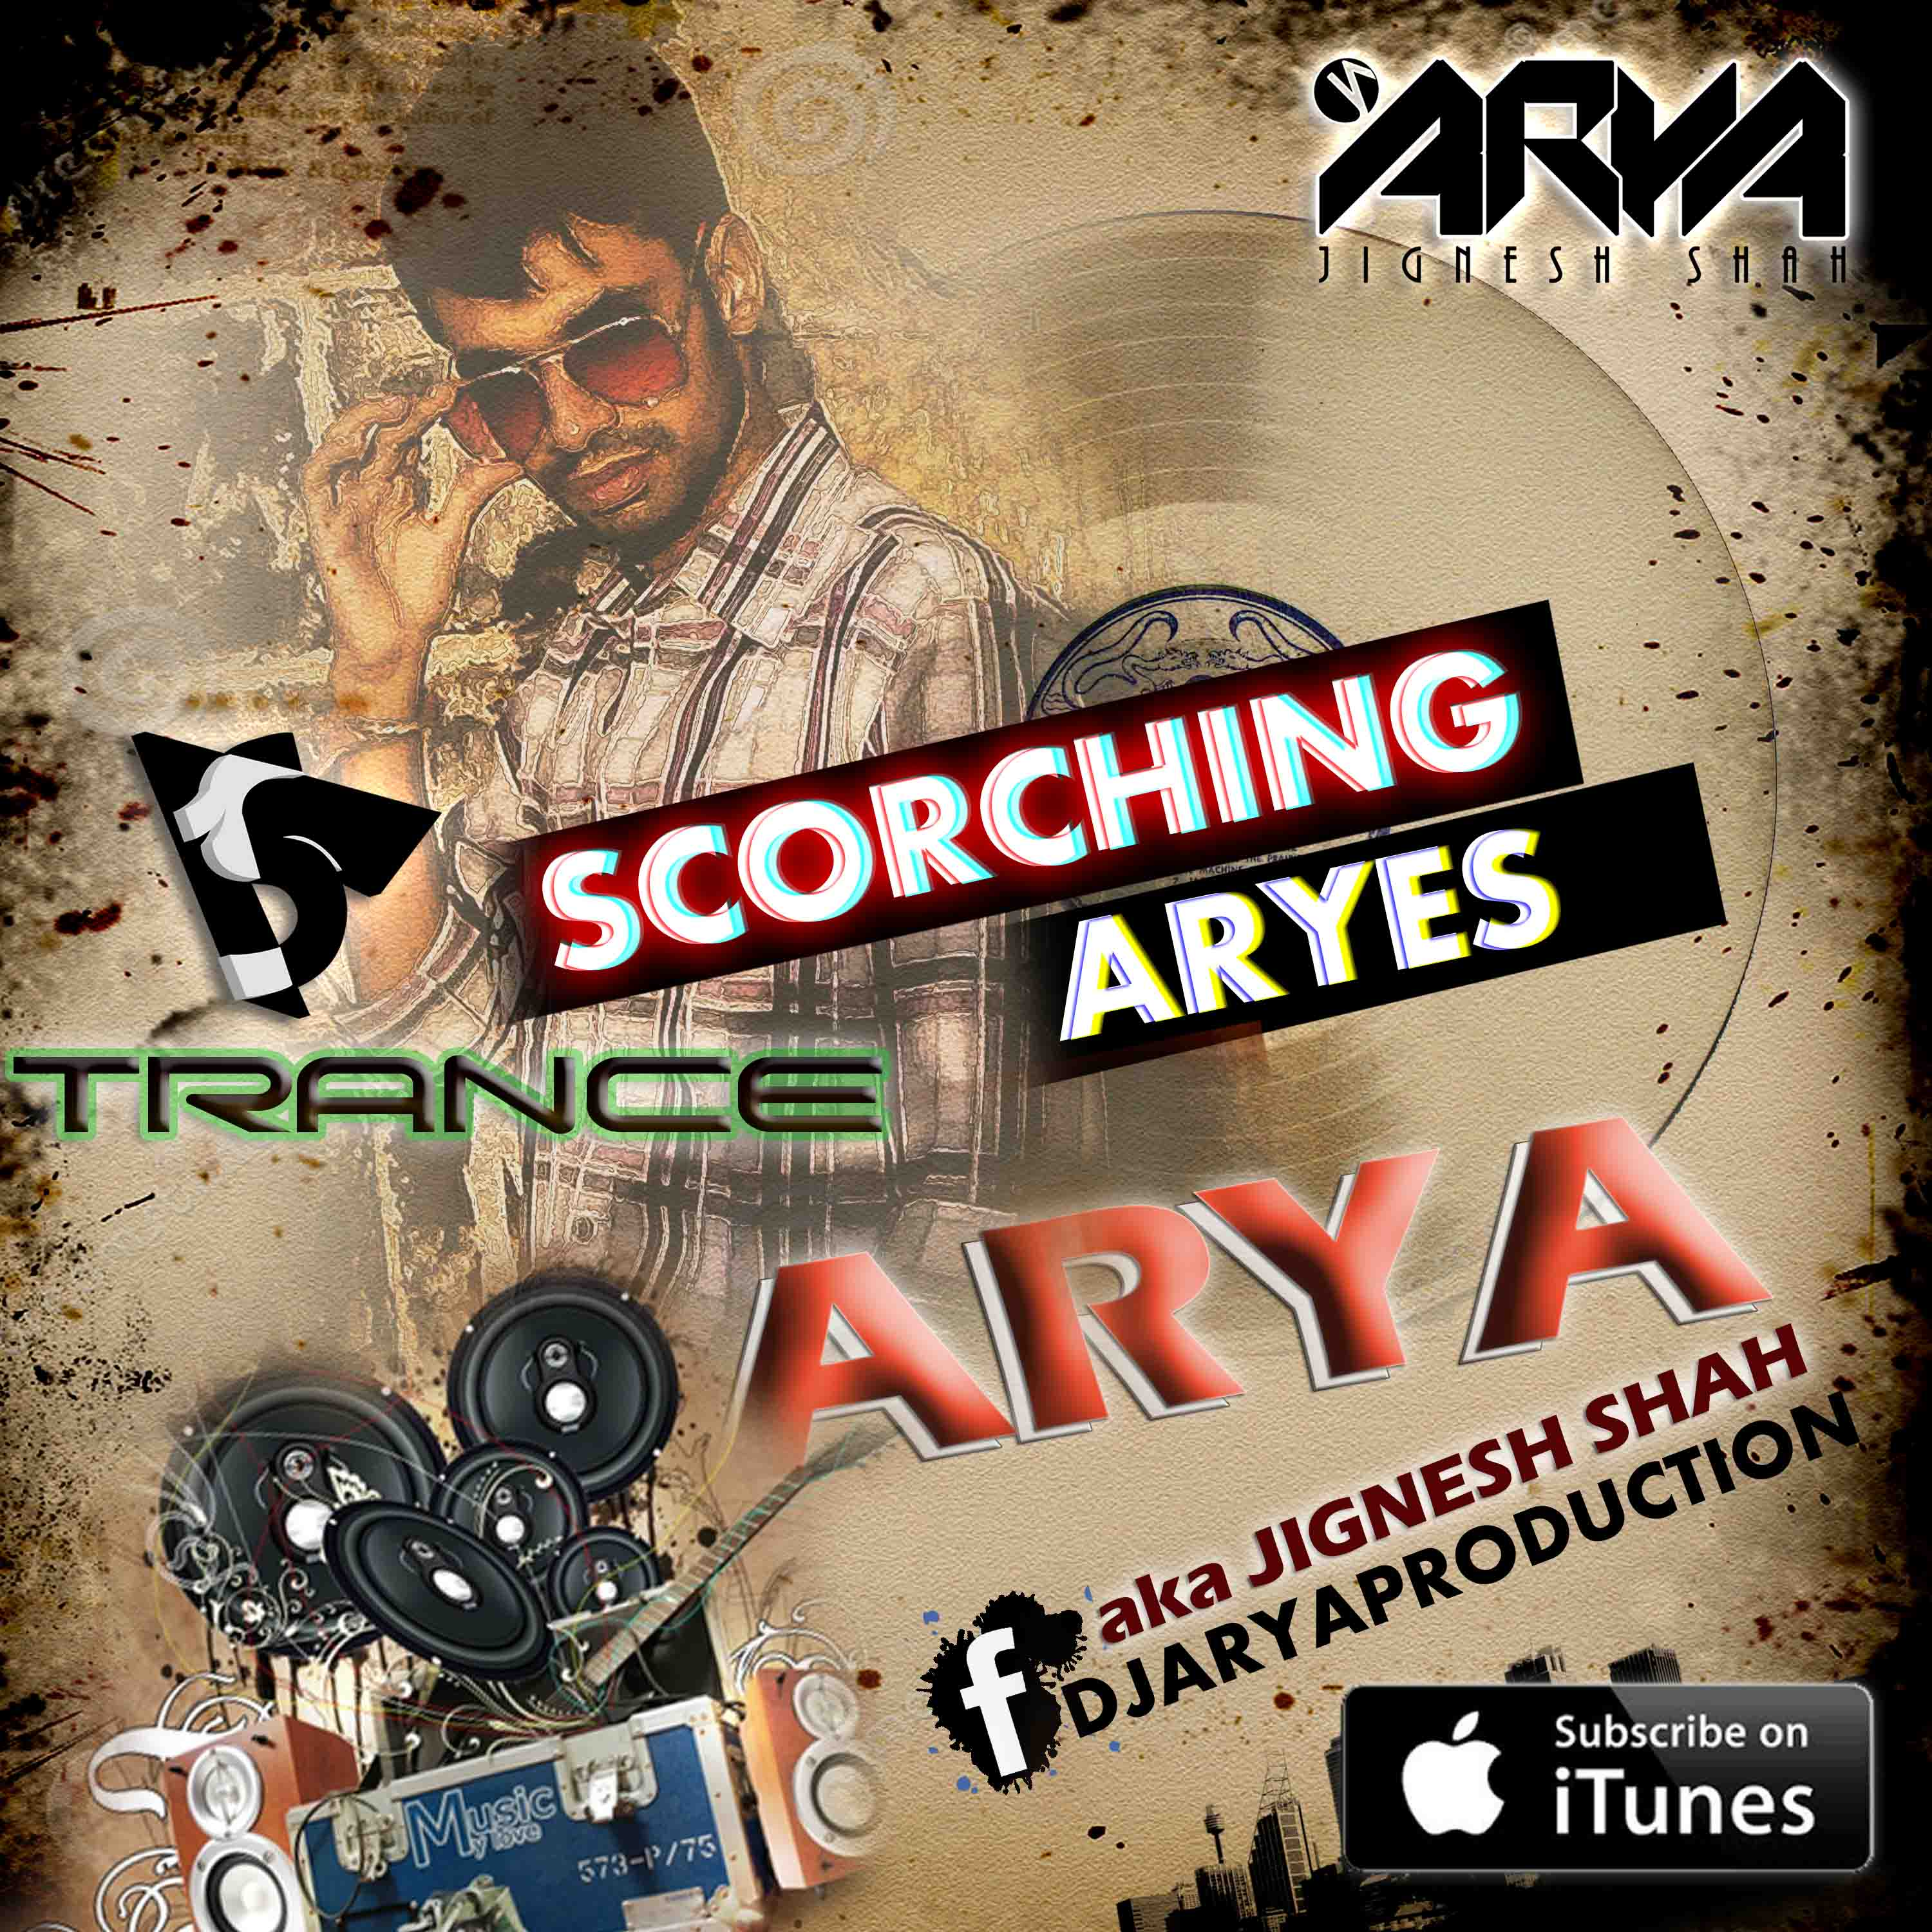 SCORCHING ARYes - (TRANCE SHOW)